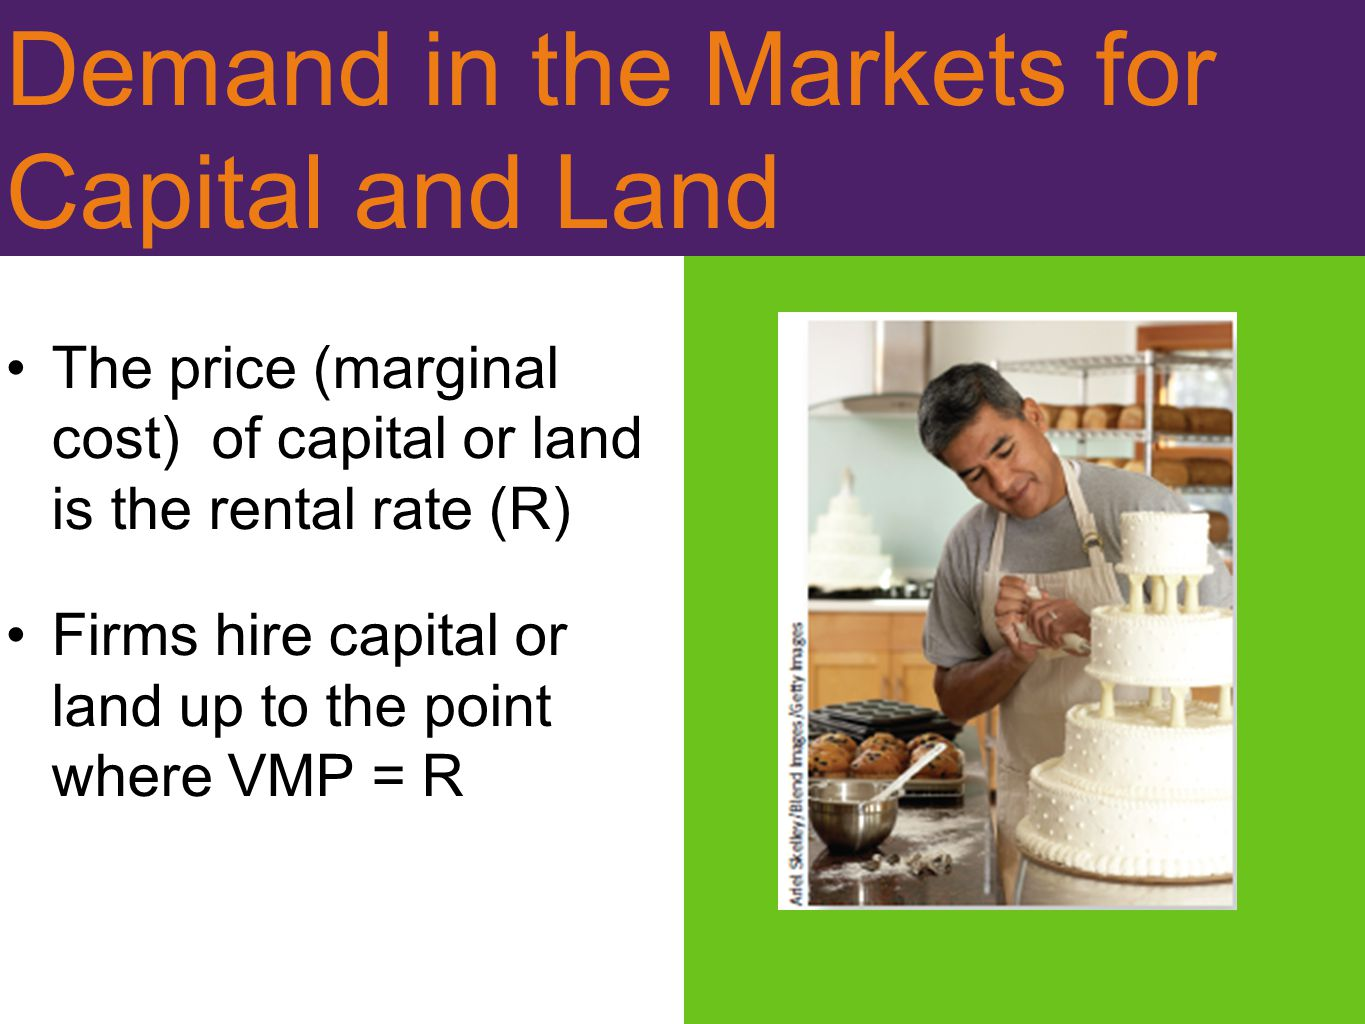 Demand in the Markets for Capital and Land